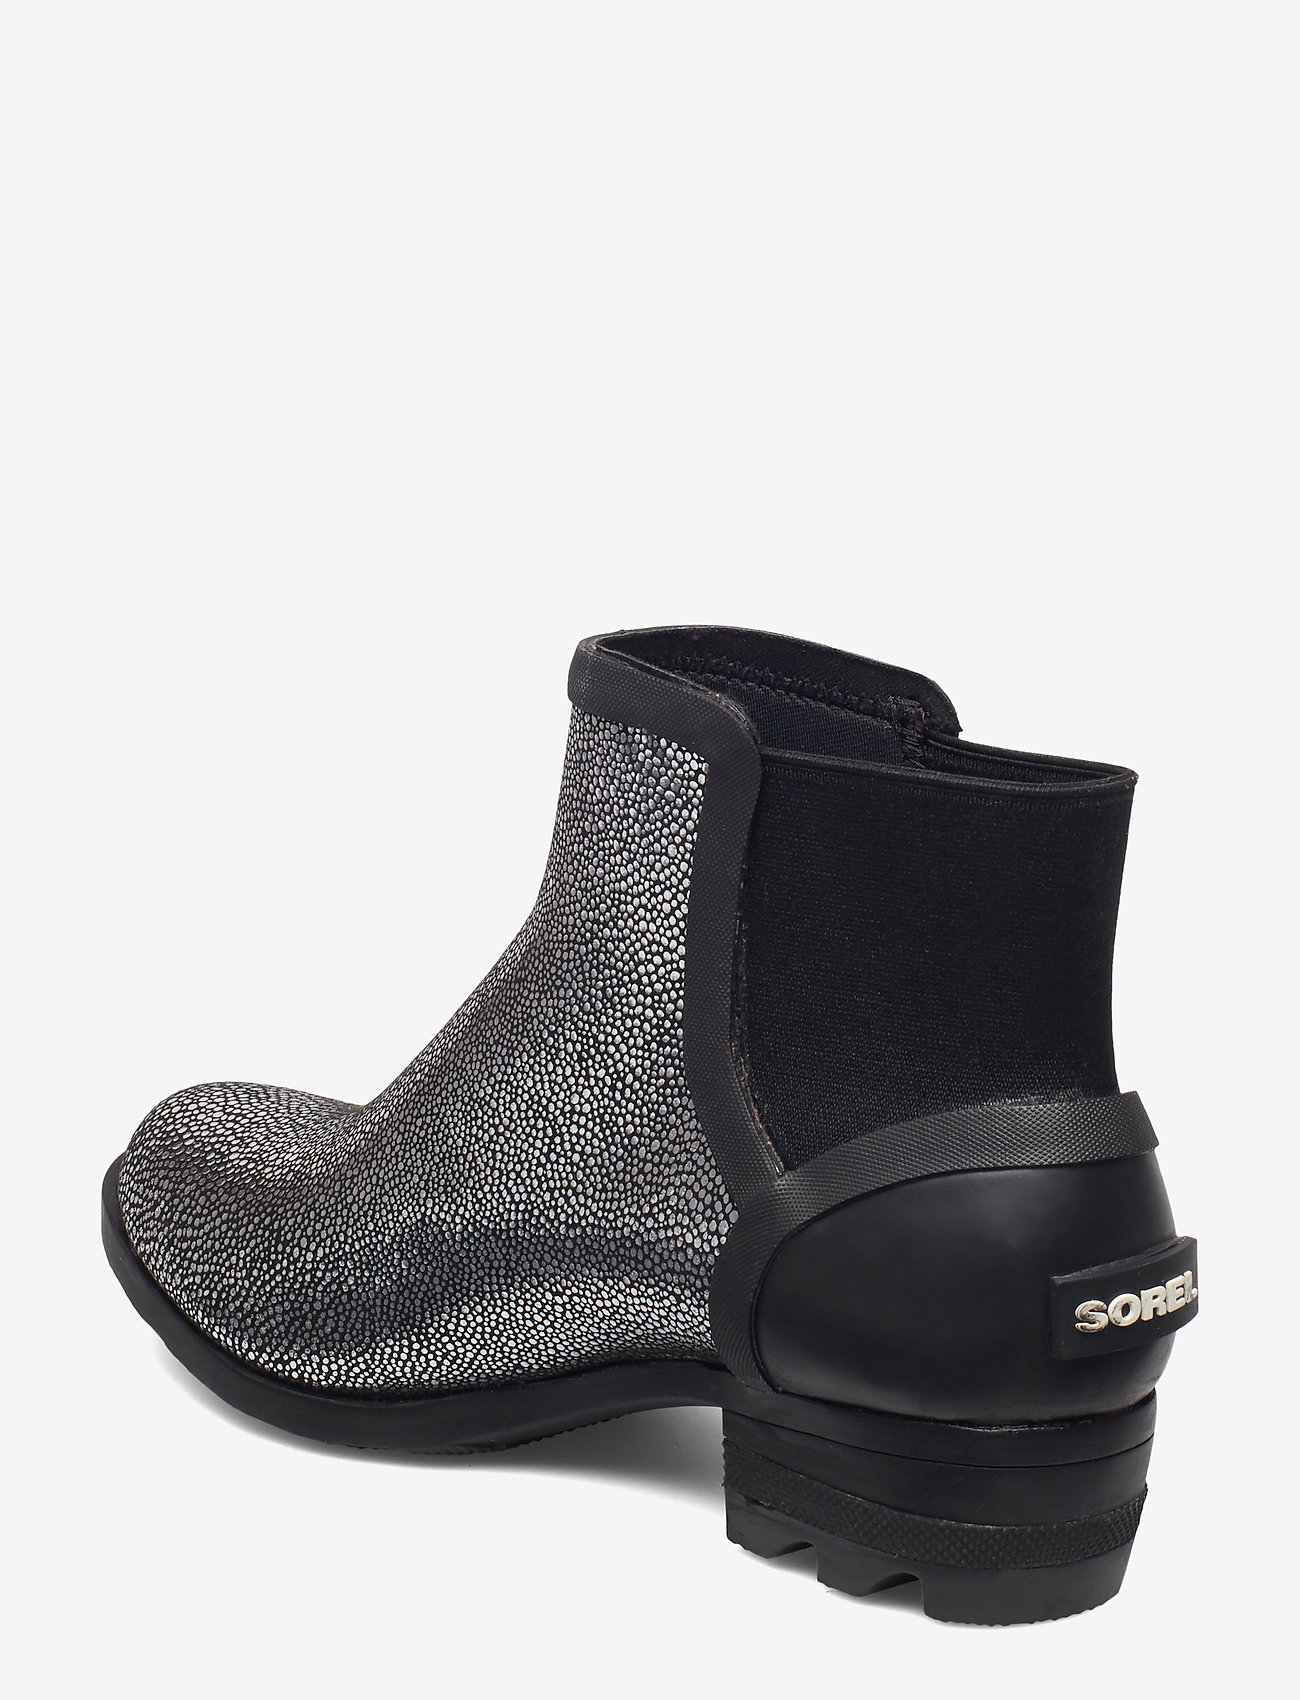 Janey Chelsea- Metallic (Black Pure Silver) (77.99 €) - Sorel zNsbE